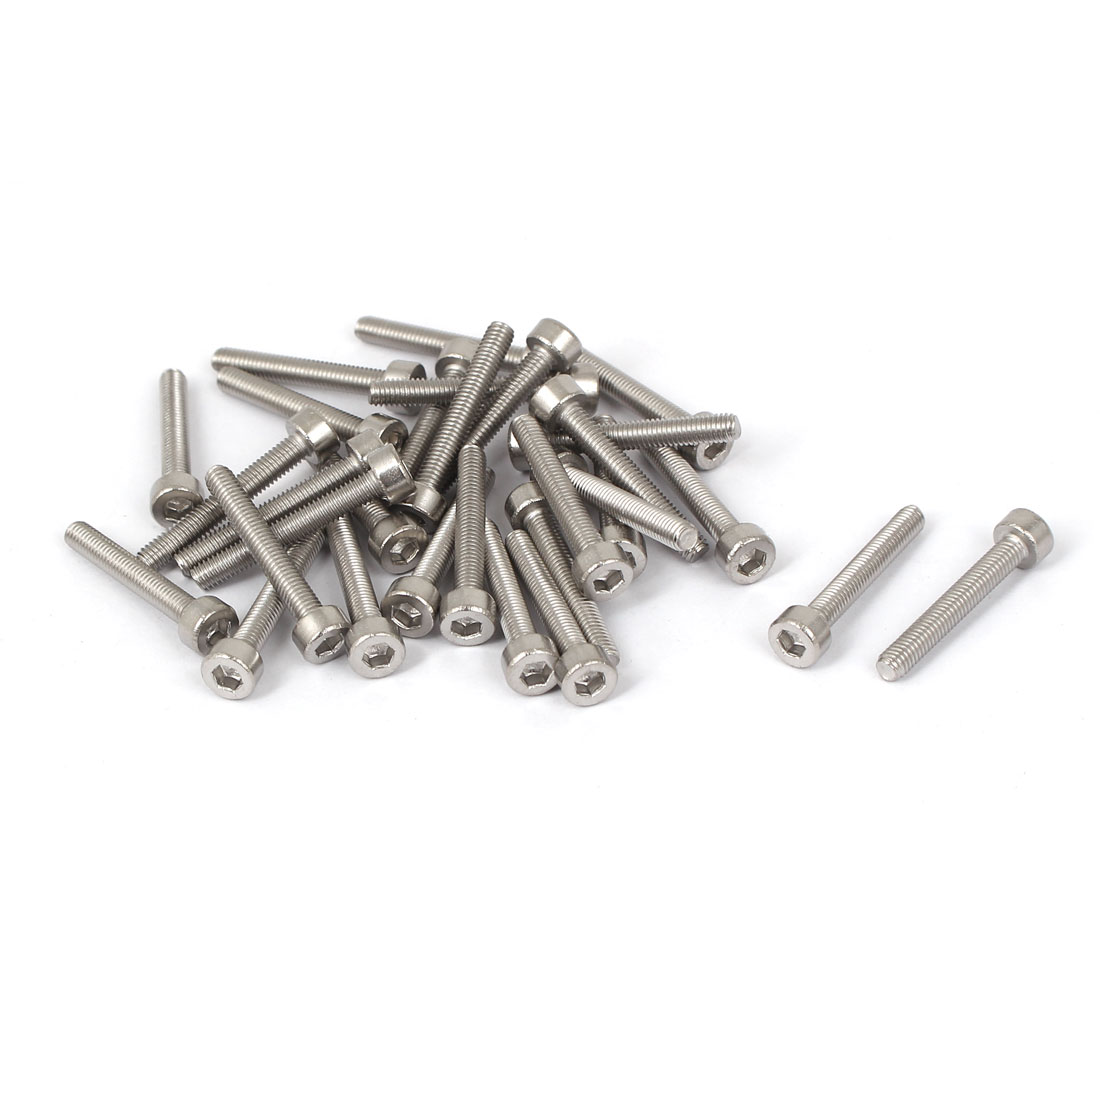 30 Pcs M3x20mm 316 Stainless Steel Metric Silver Tone Hex Socket Cap Fasteners